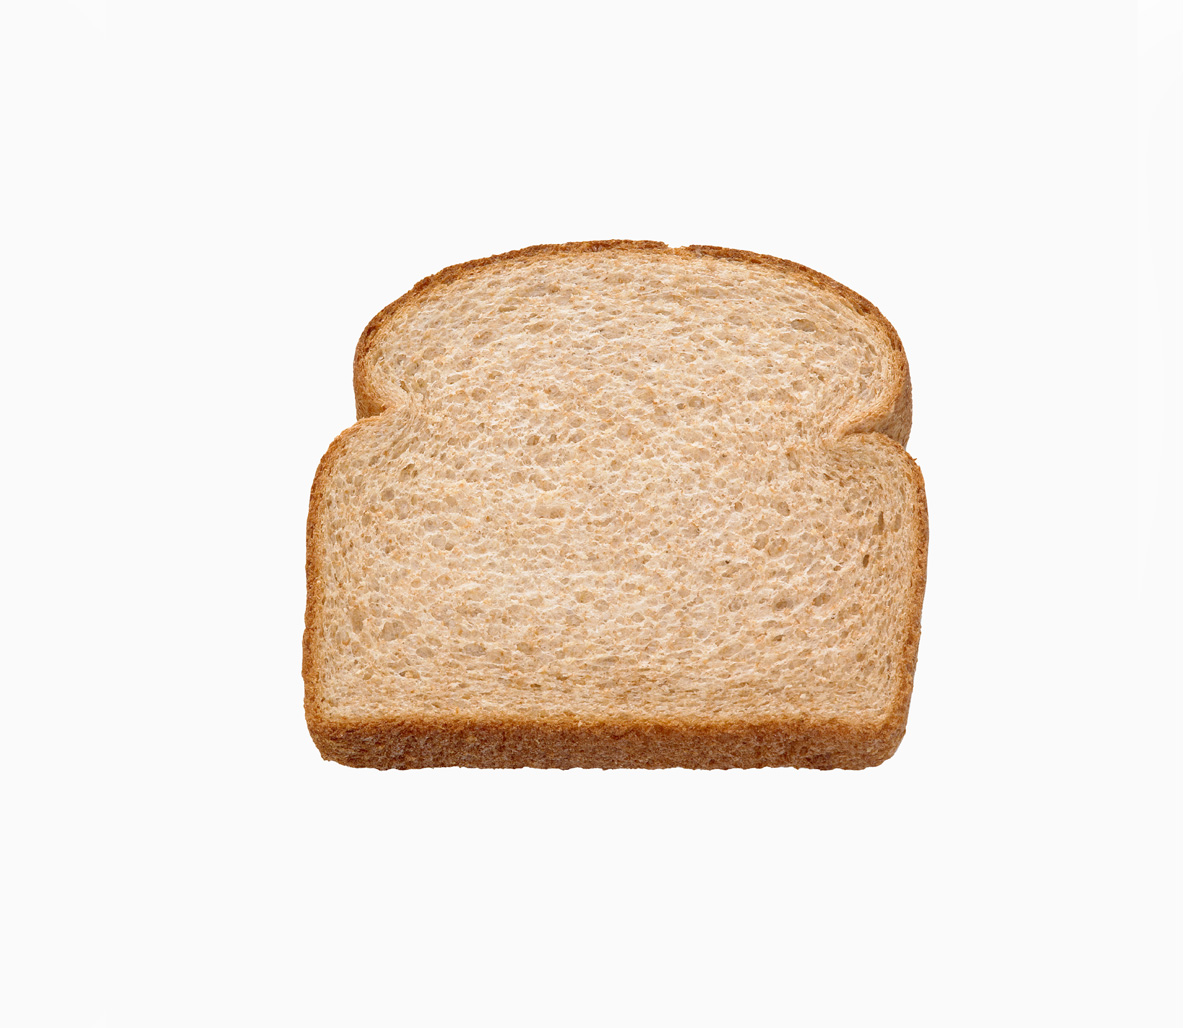 Forum on this topic: Whole Wheat Bread vs. White Bread, whole-wheat-bread-vs-white-bread/